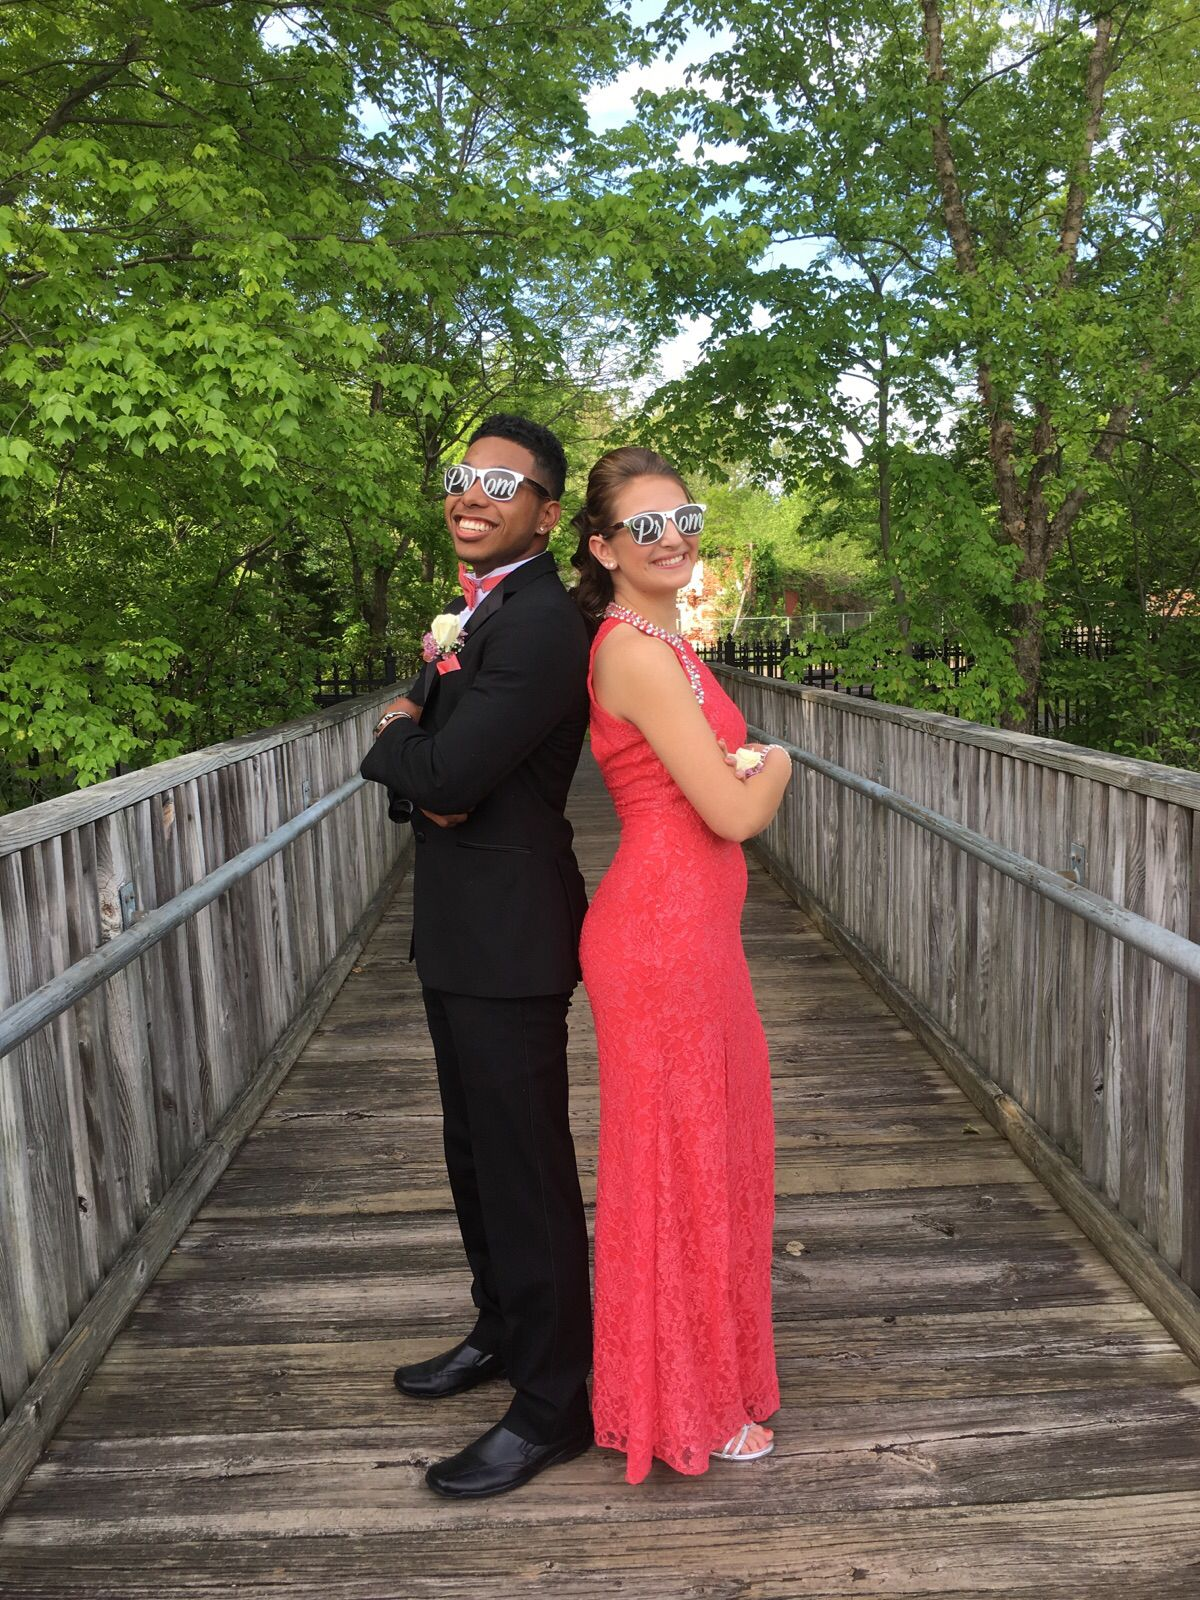 Prom poses, couple goals #Prom